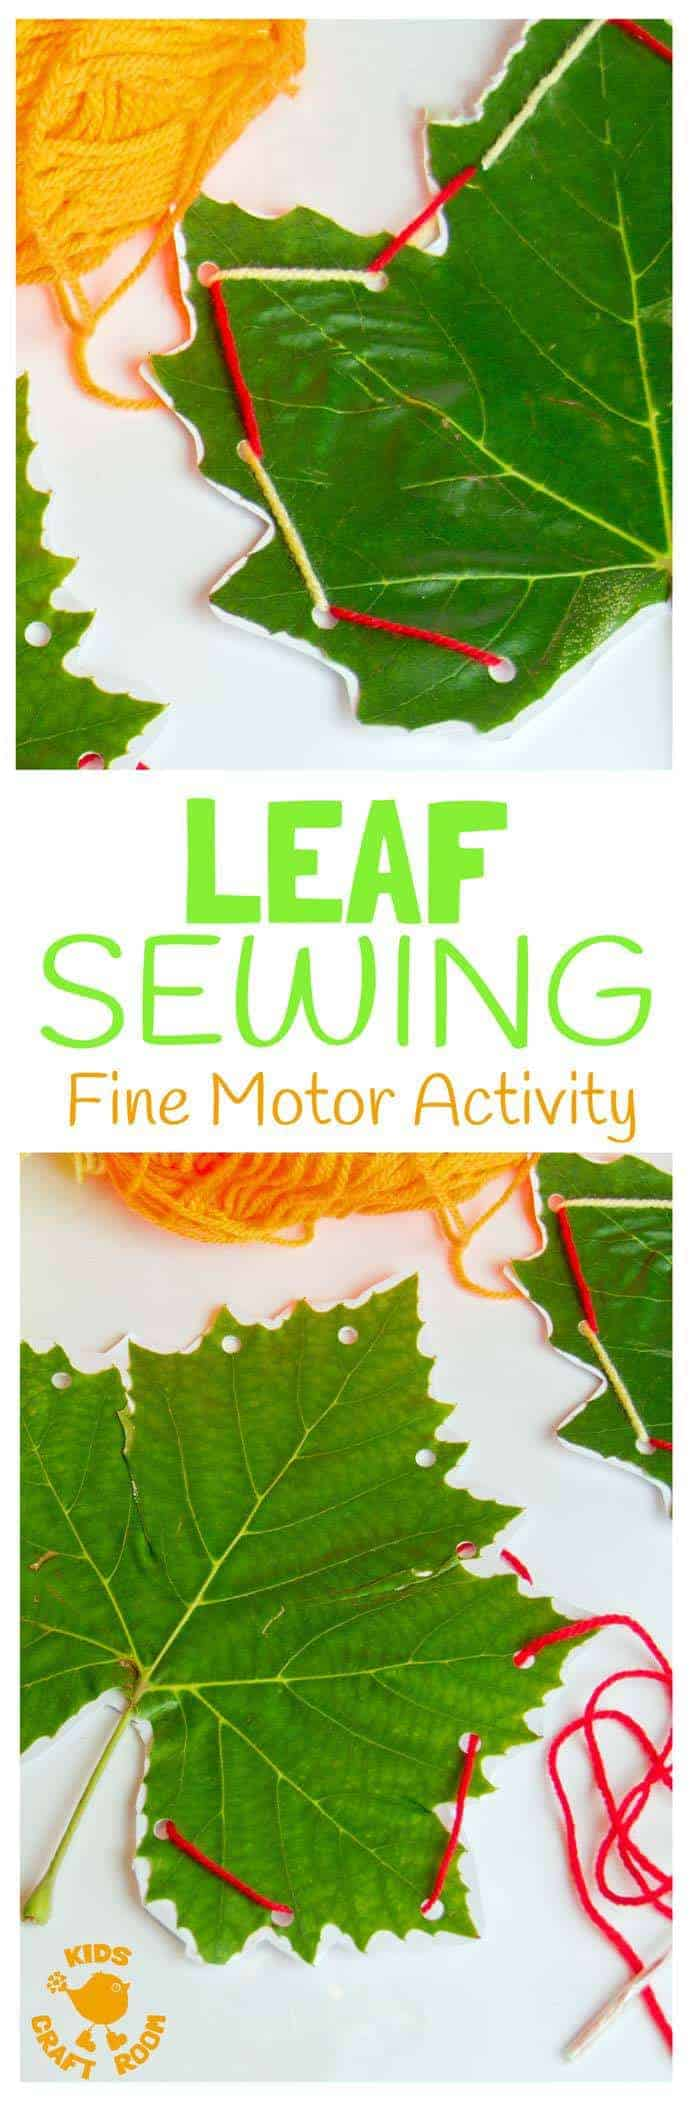 LEAF SEWING - A fun Autumn / Fall craft for kids. This Fall activity builds fine motor skills and connects kids with Nature using real leaves. An unusual leaf craft kids will love.